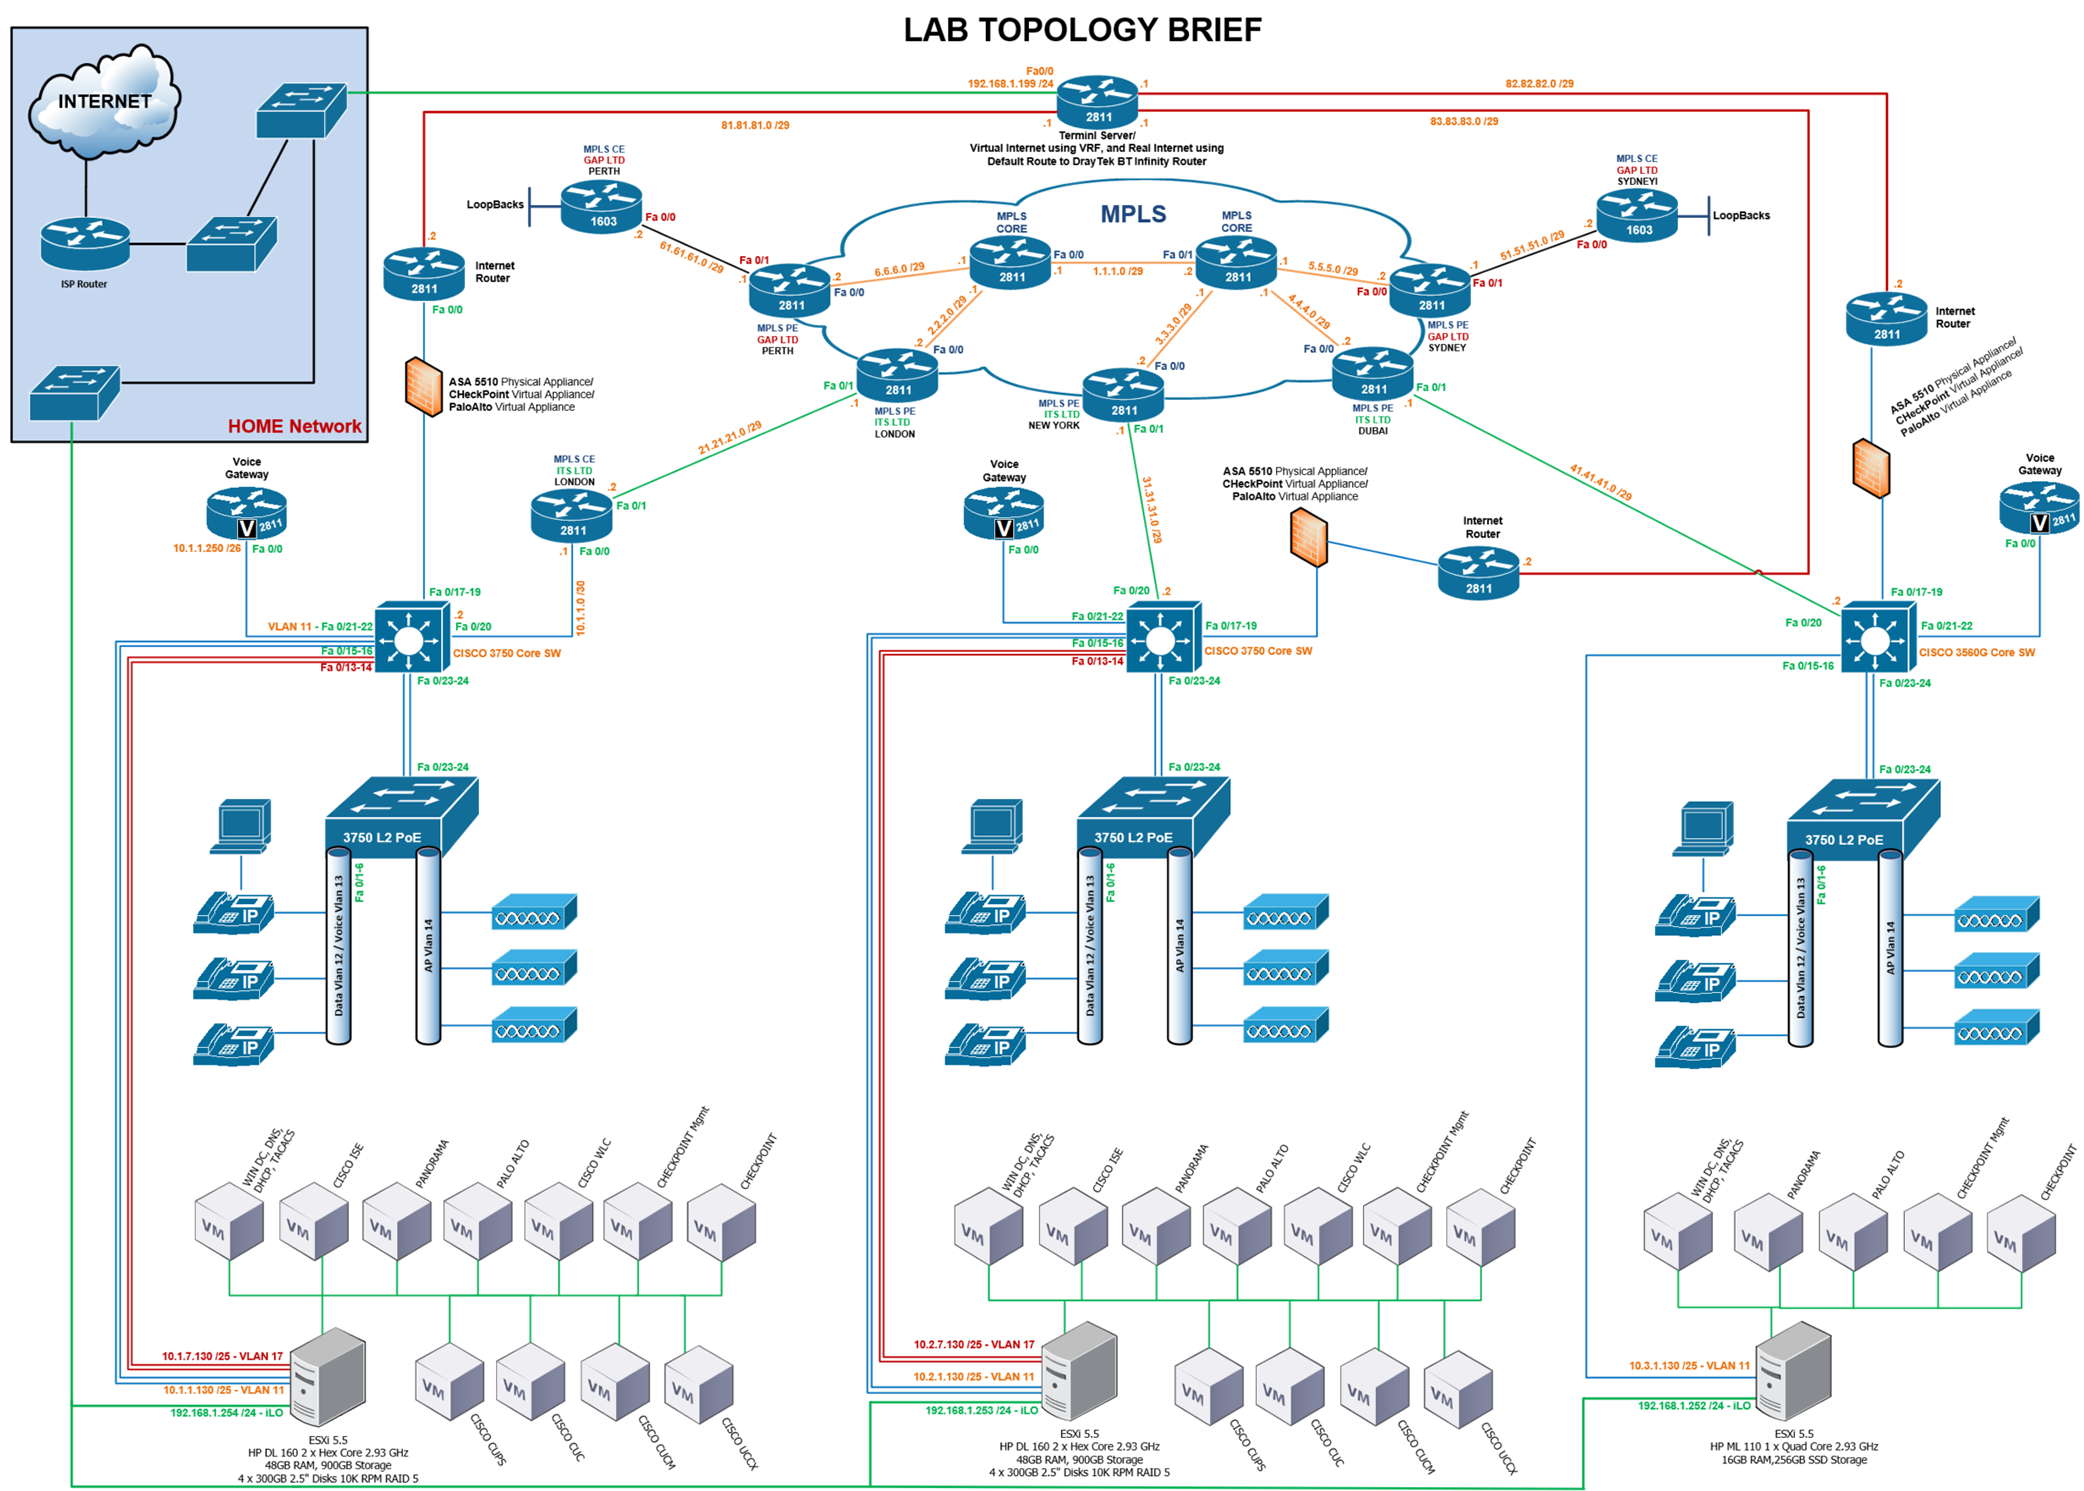 Home LAB Topology